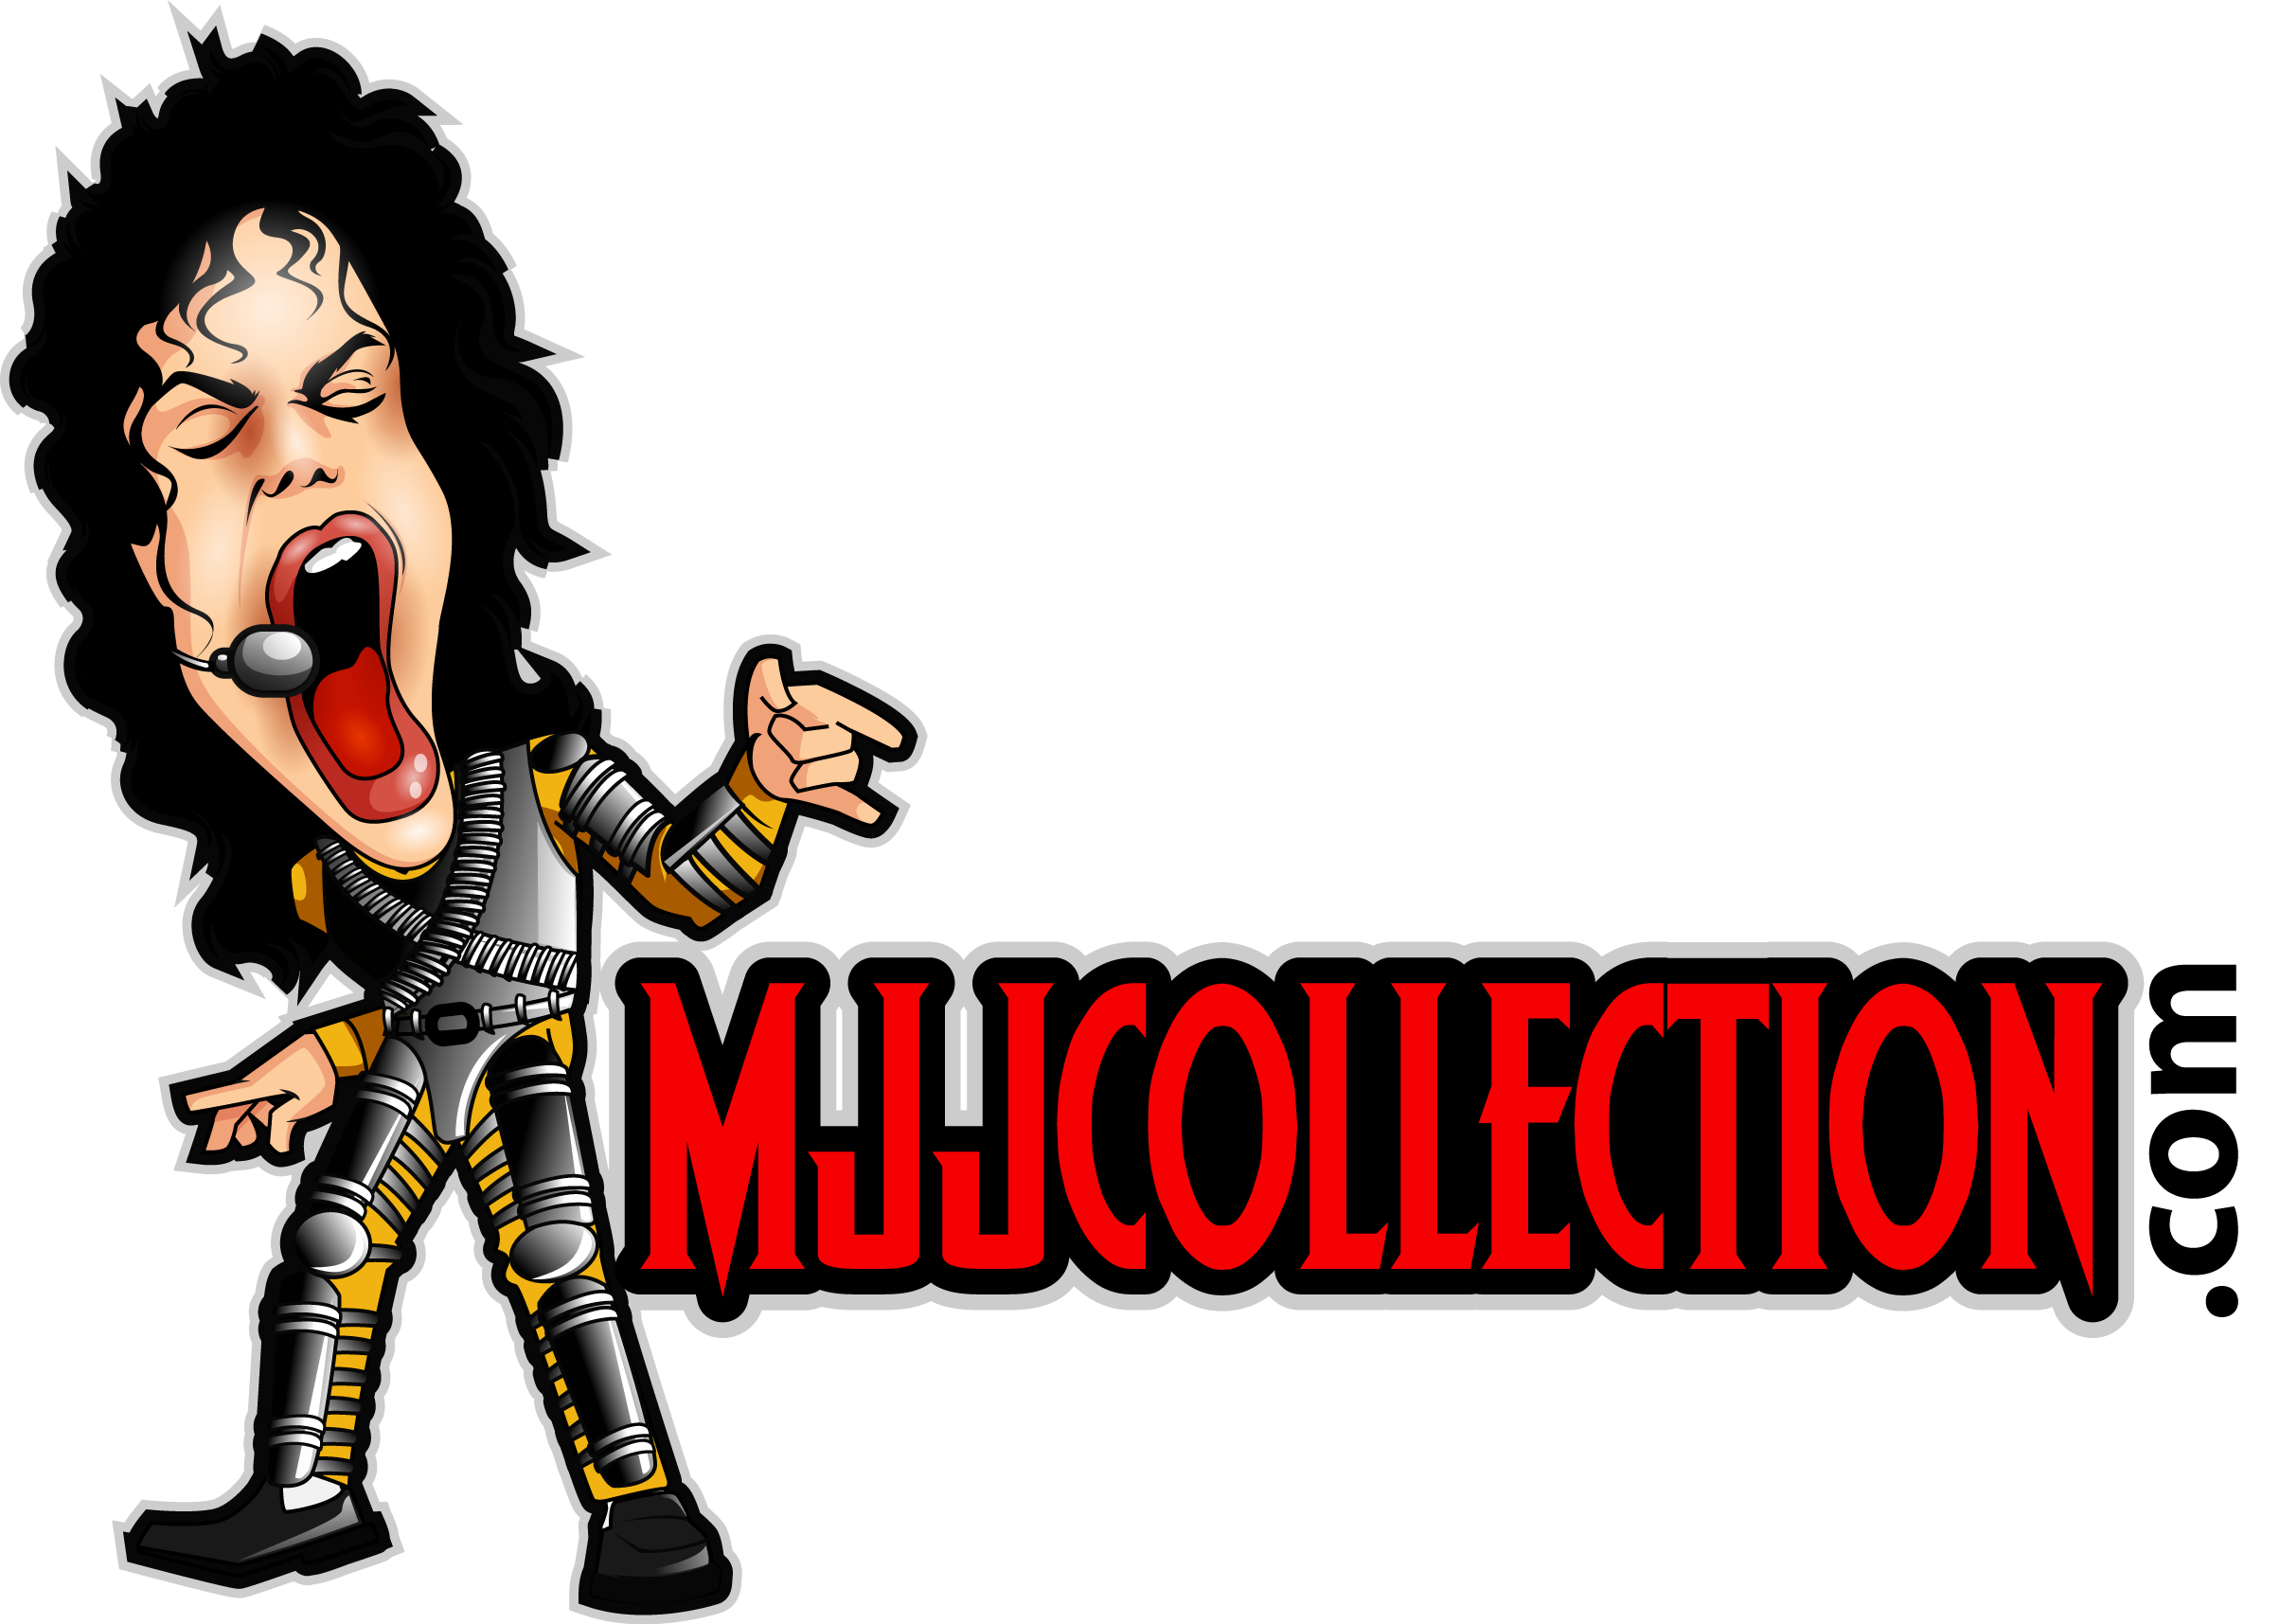 MJJCollection.com